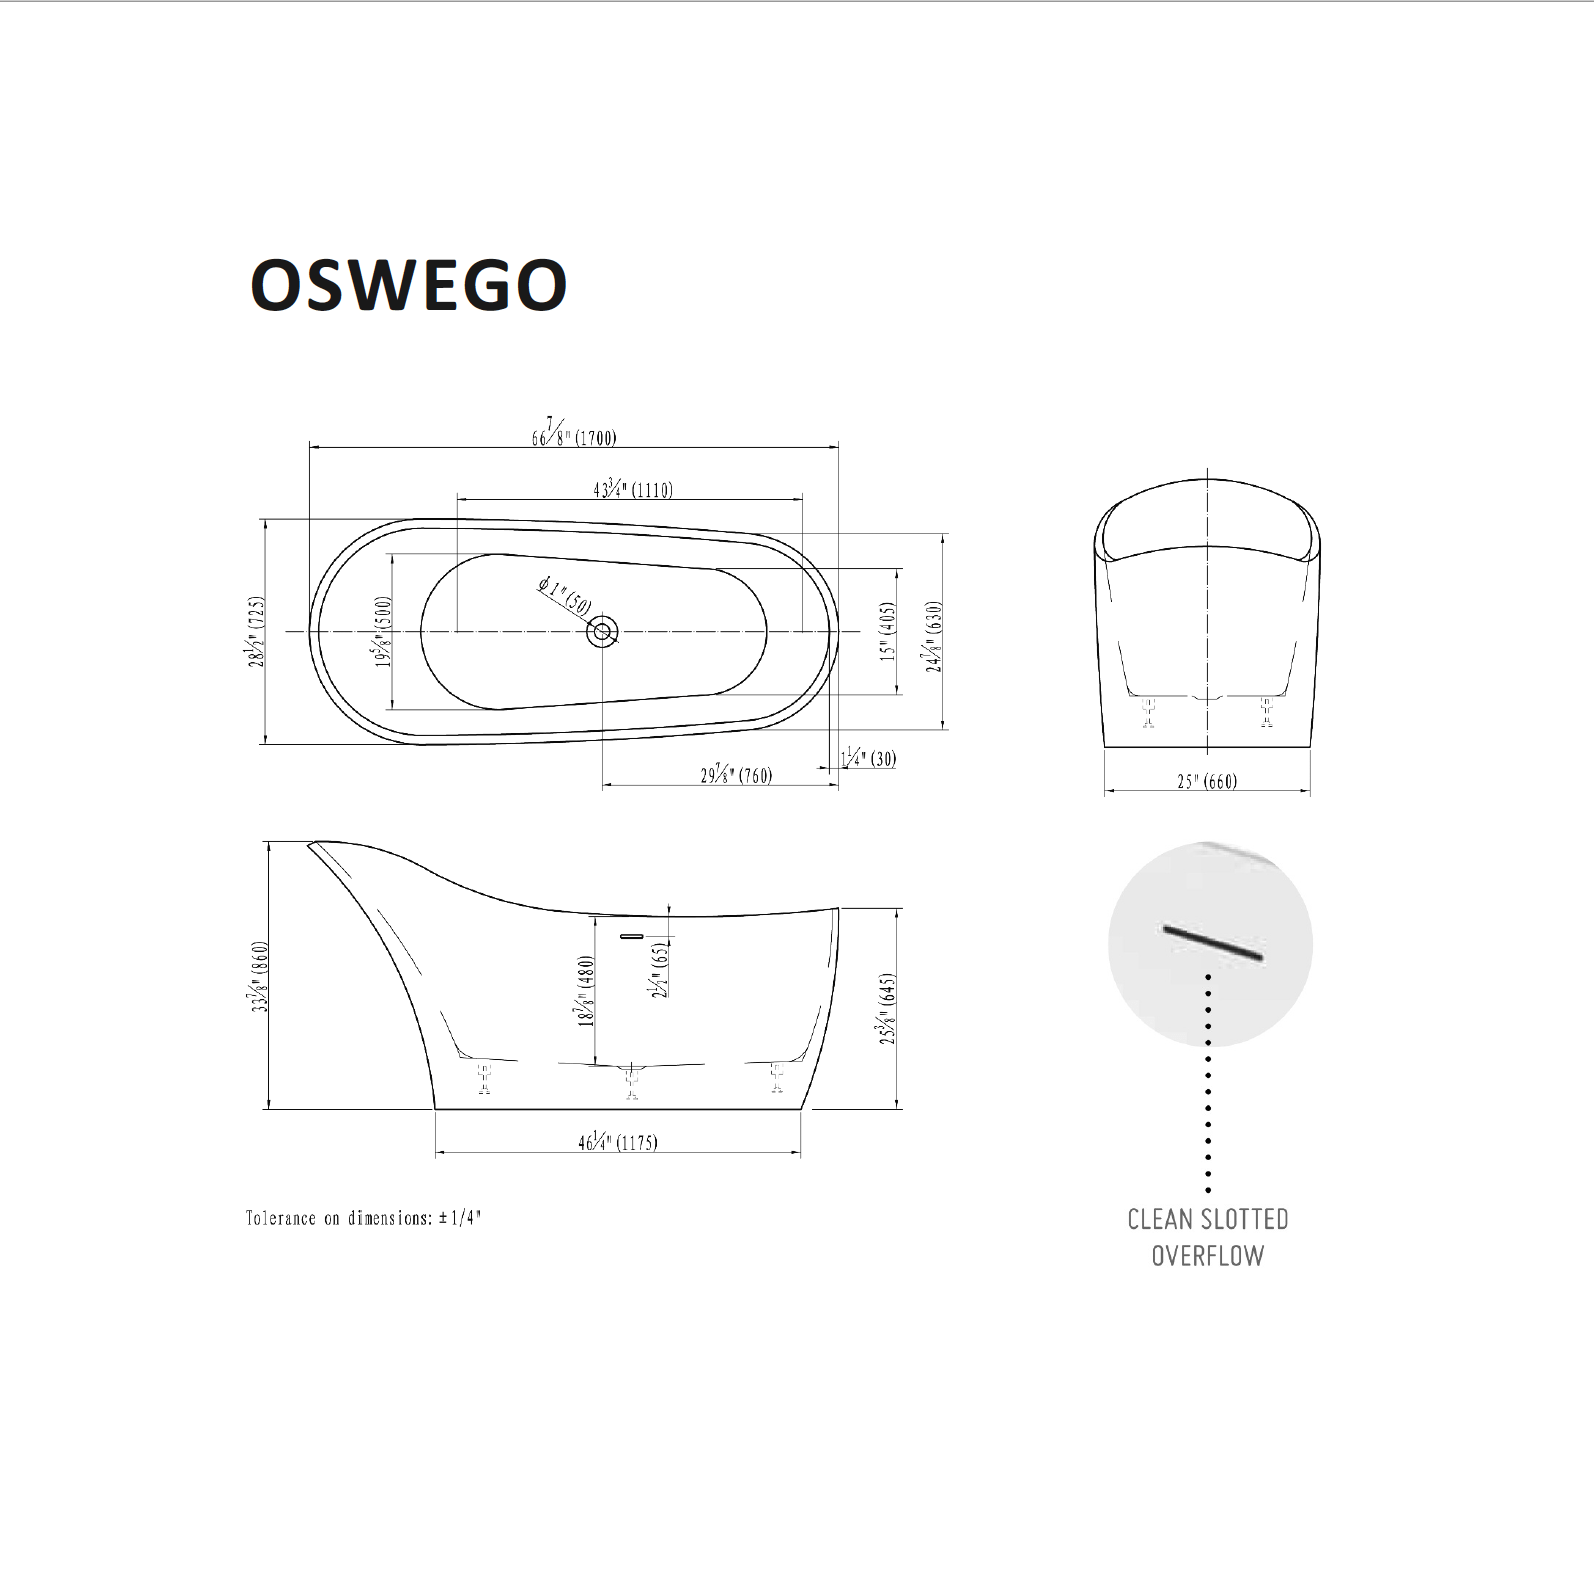 Oswego Tub Specifications